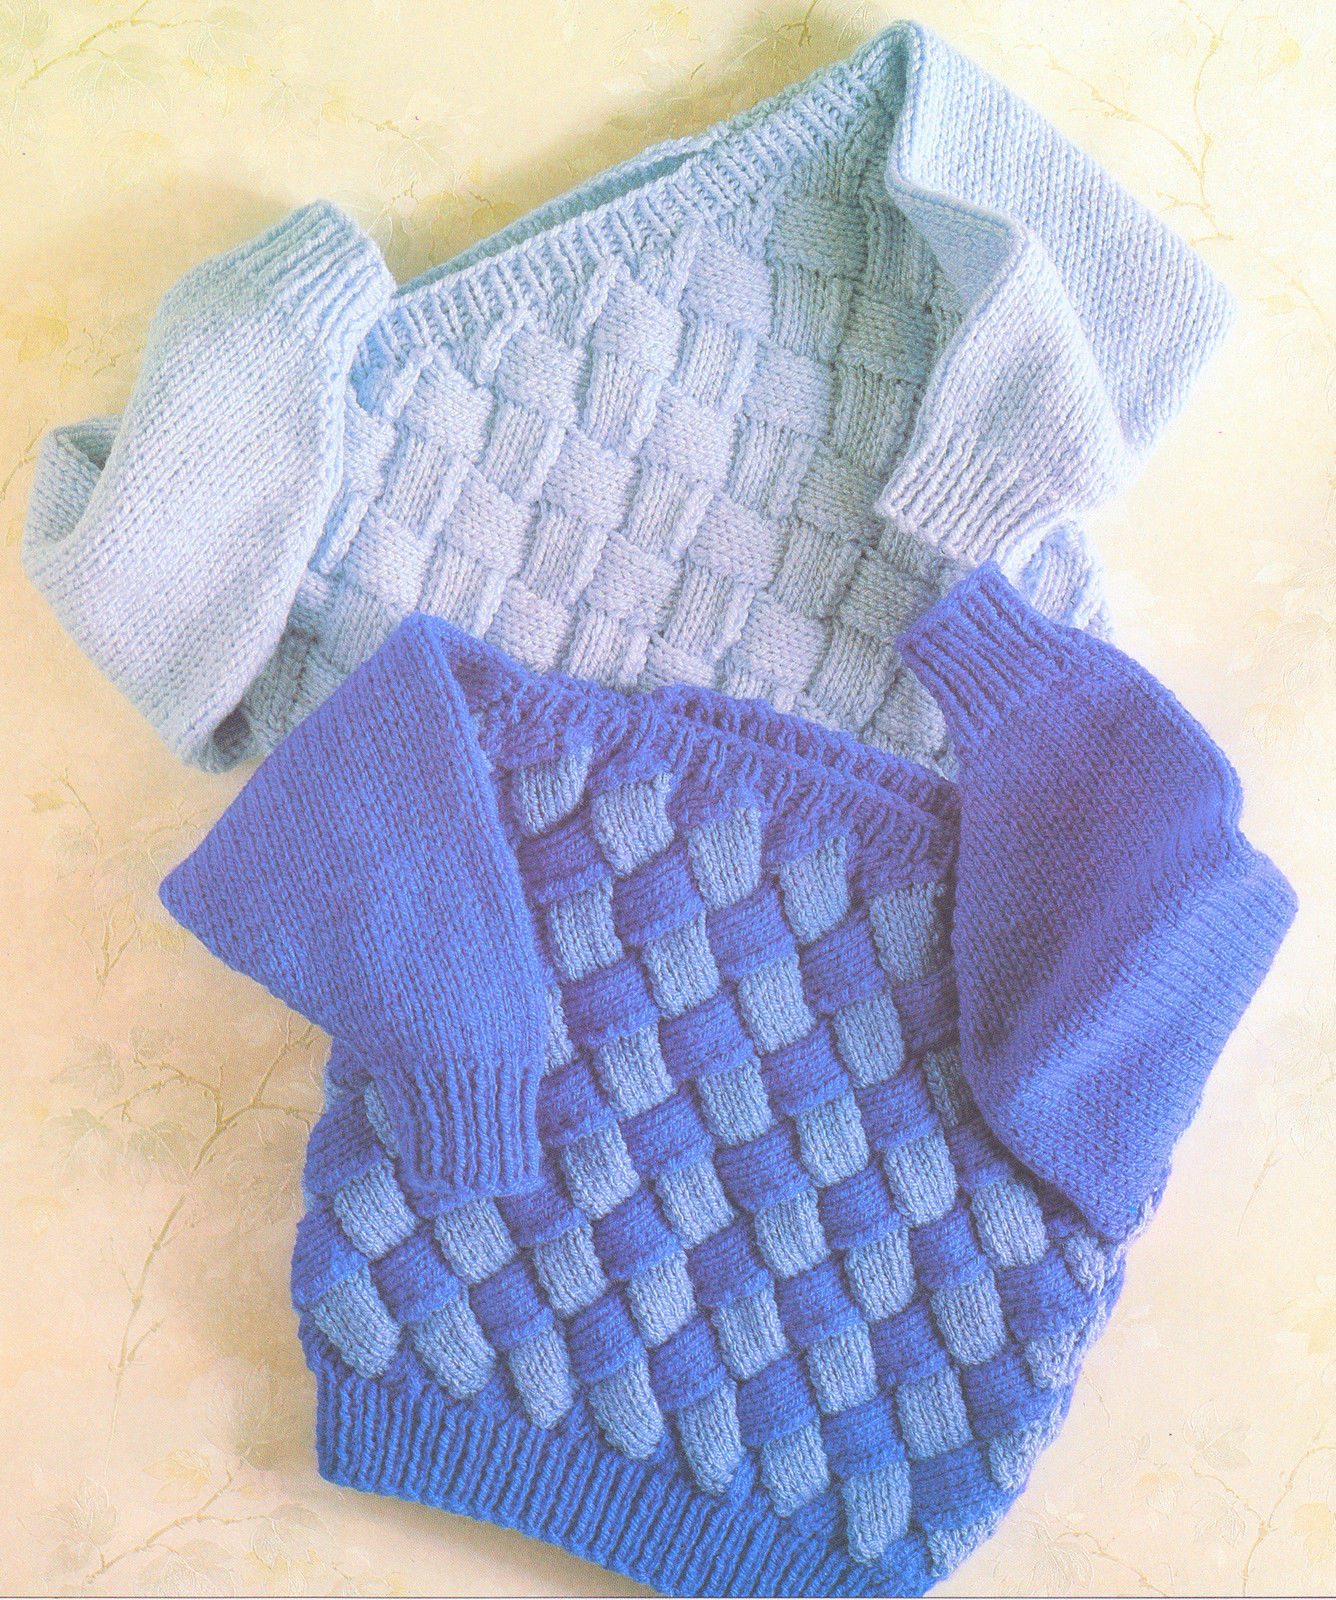 Chunky Knitting Patterns Beautiful Chunky Wool Baby Childrens Sweaters Entrelac Knitting Of Incredible 44 Pics Chunky Knitting Patterns